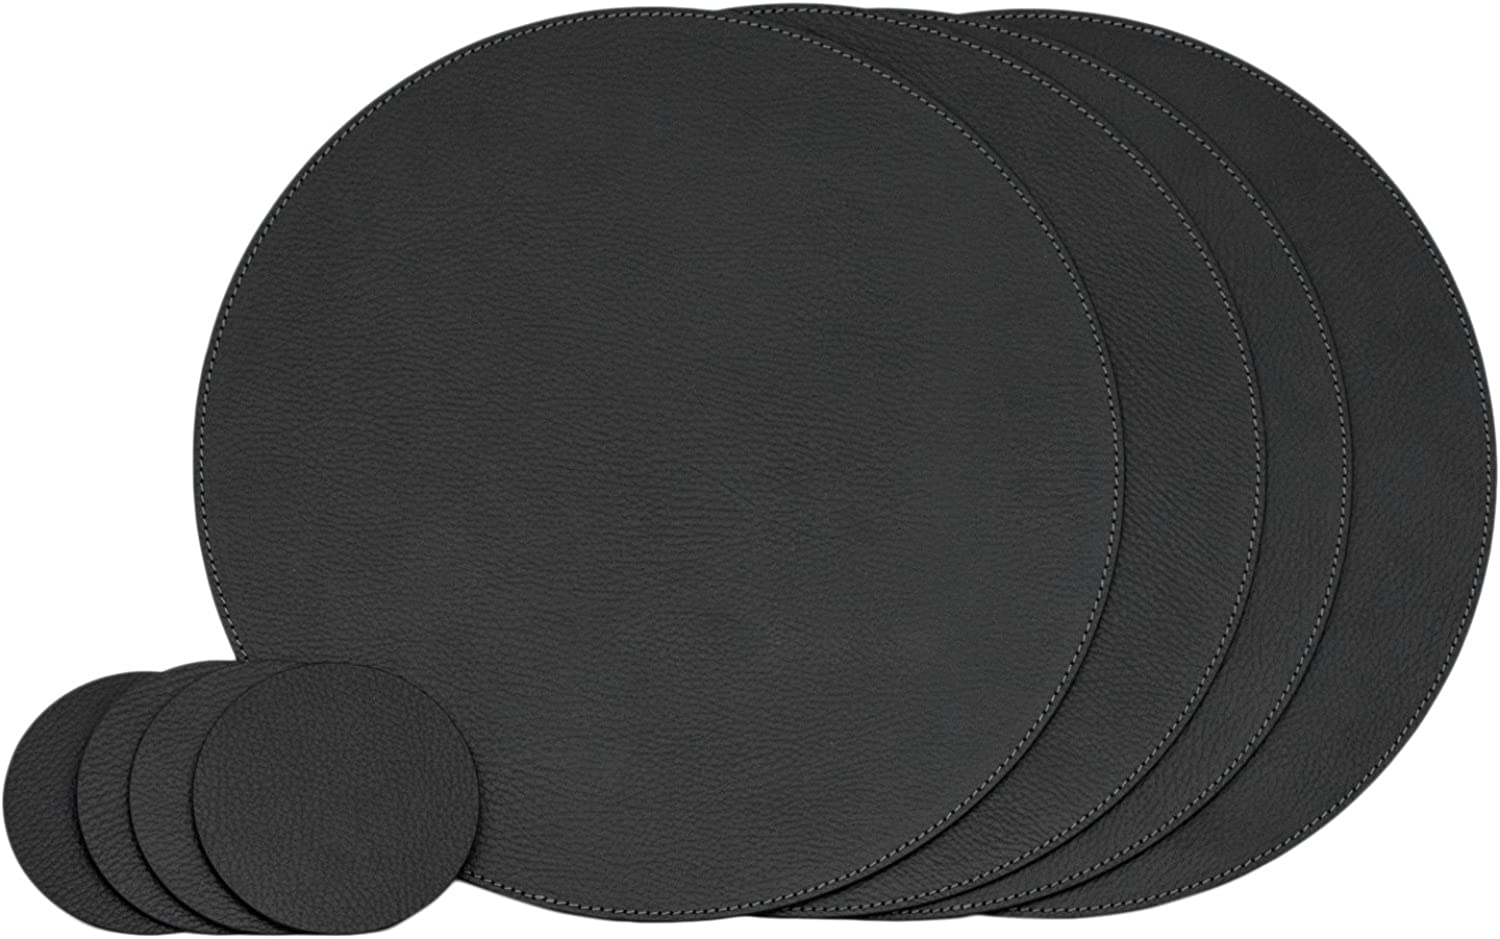 Nikalaz Set of Round Black Placemats and Coasters, 4 Table Mats and 4 Coasters, Place mats 12.99'' and Coasters 3.9'', Recycled Leather (Black)